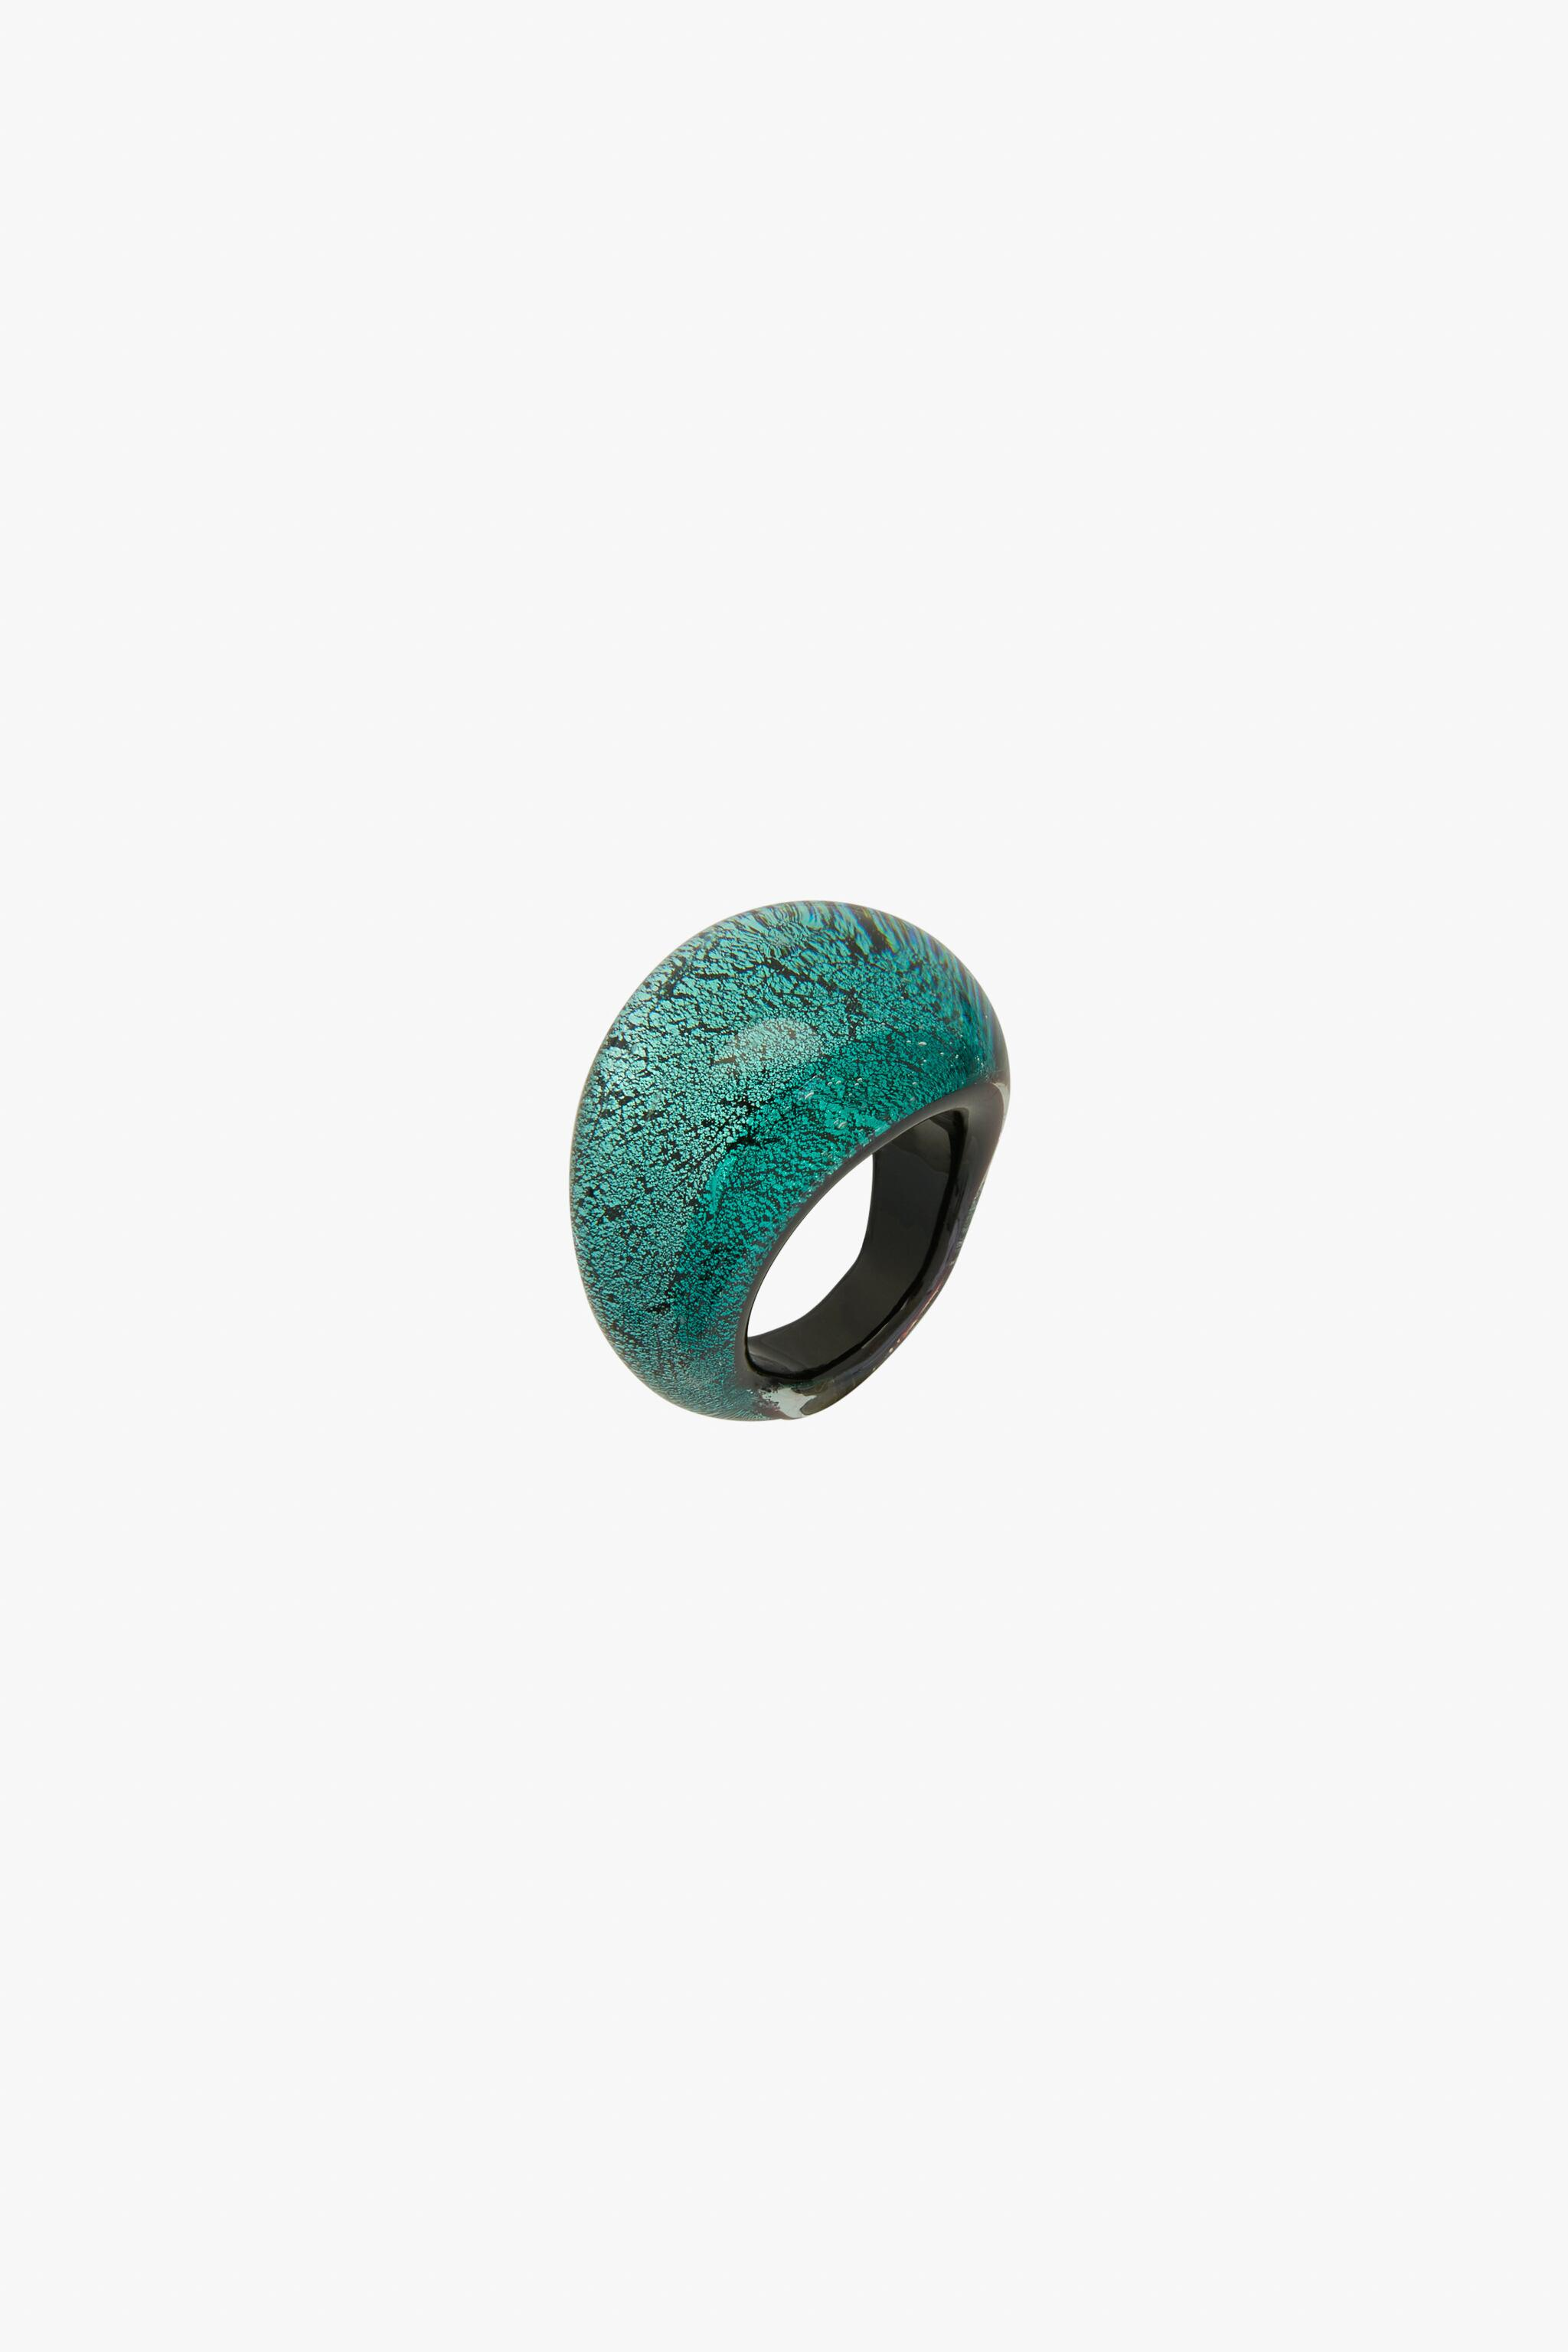 GLASS RING LIMITED EDITION 1